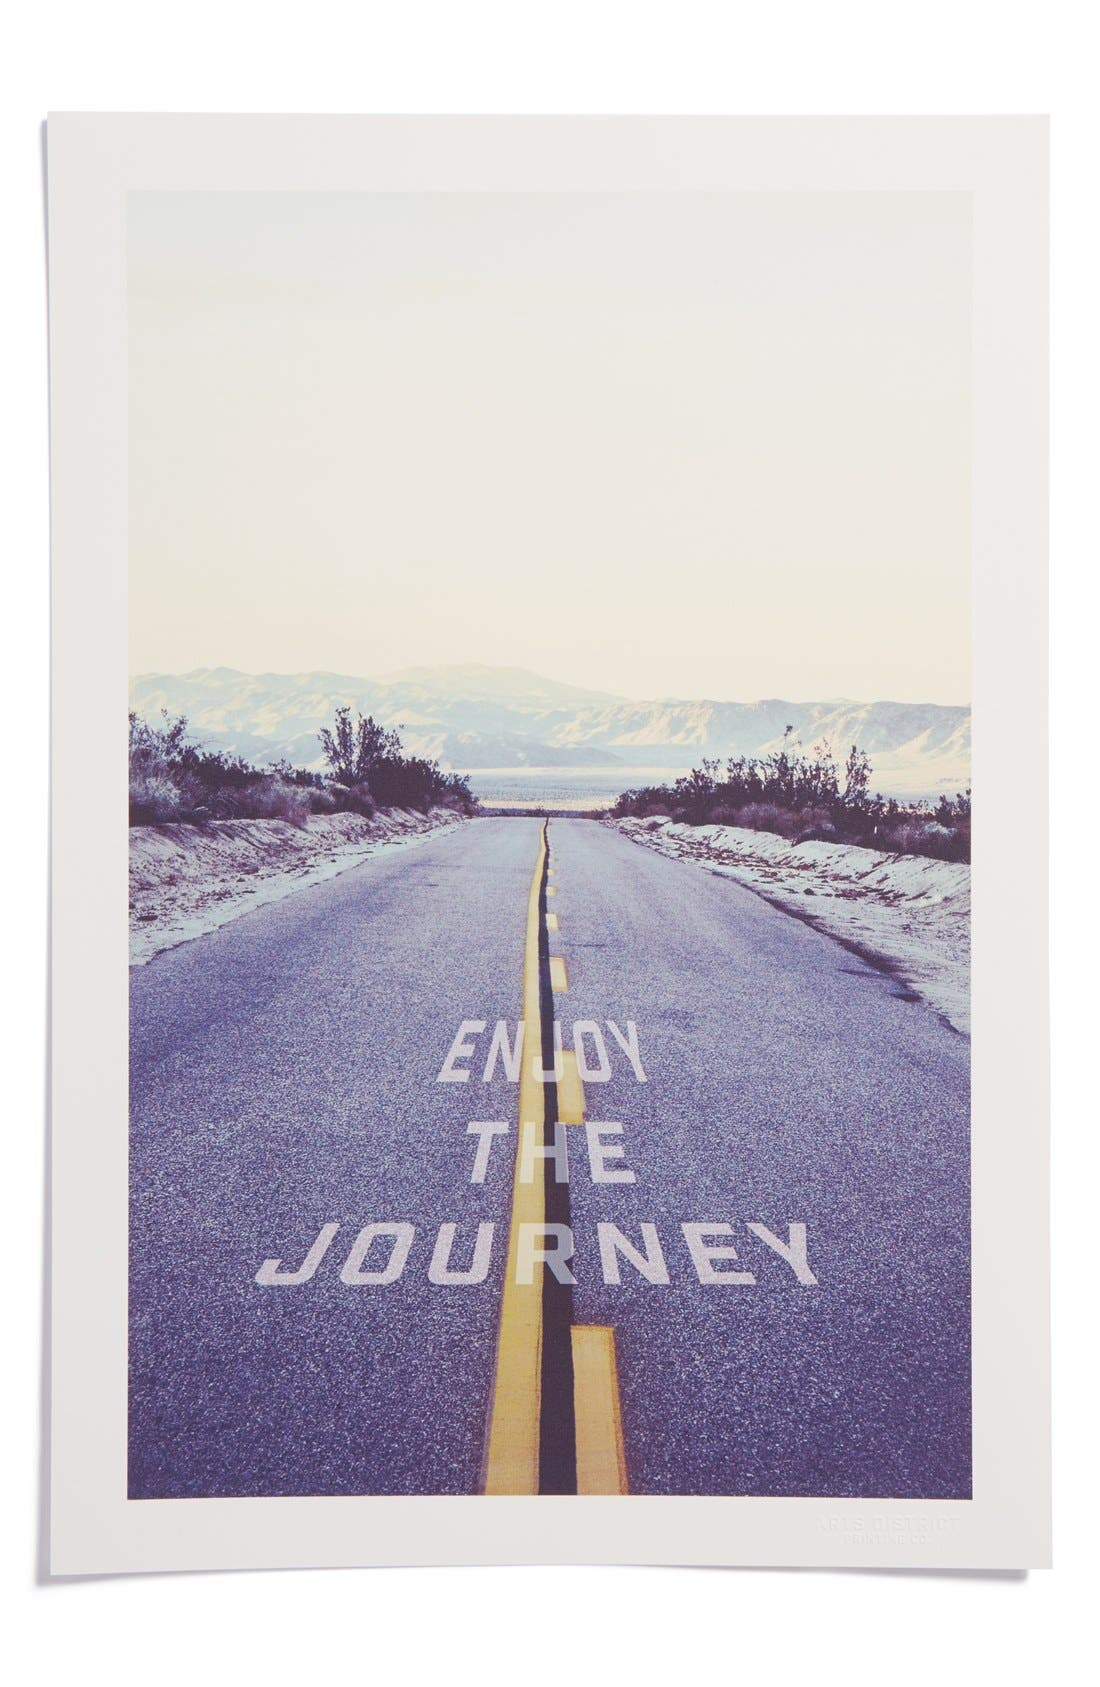 Alternate Image 1 Selected - Arts District Printing Co. 'Enjoy the Journey' Print